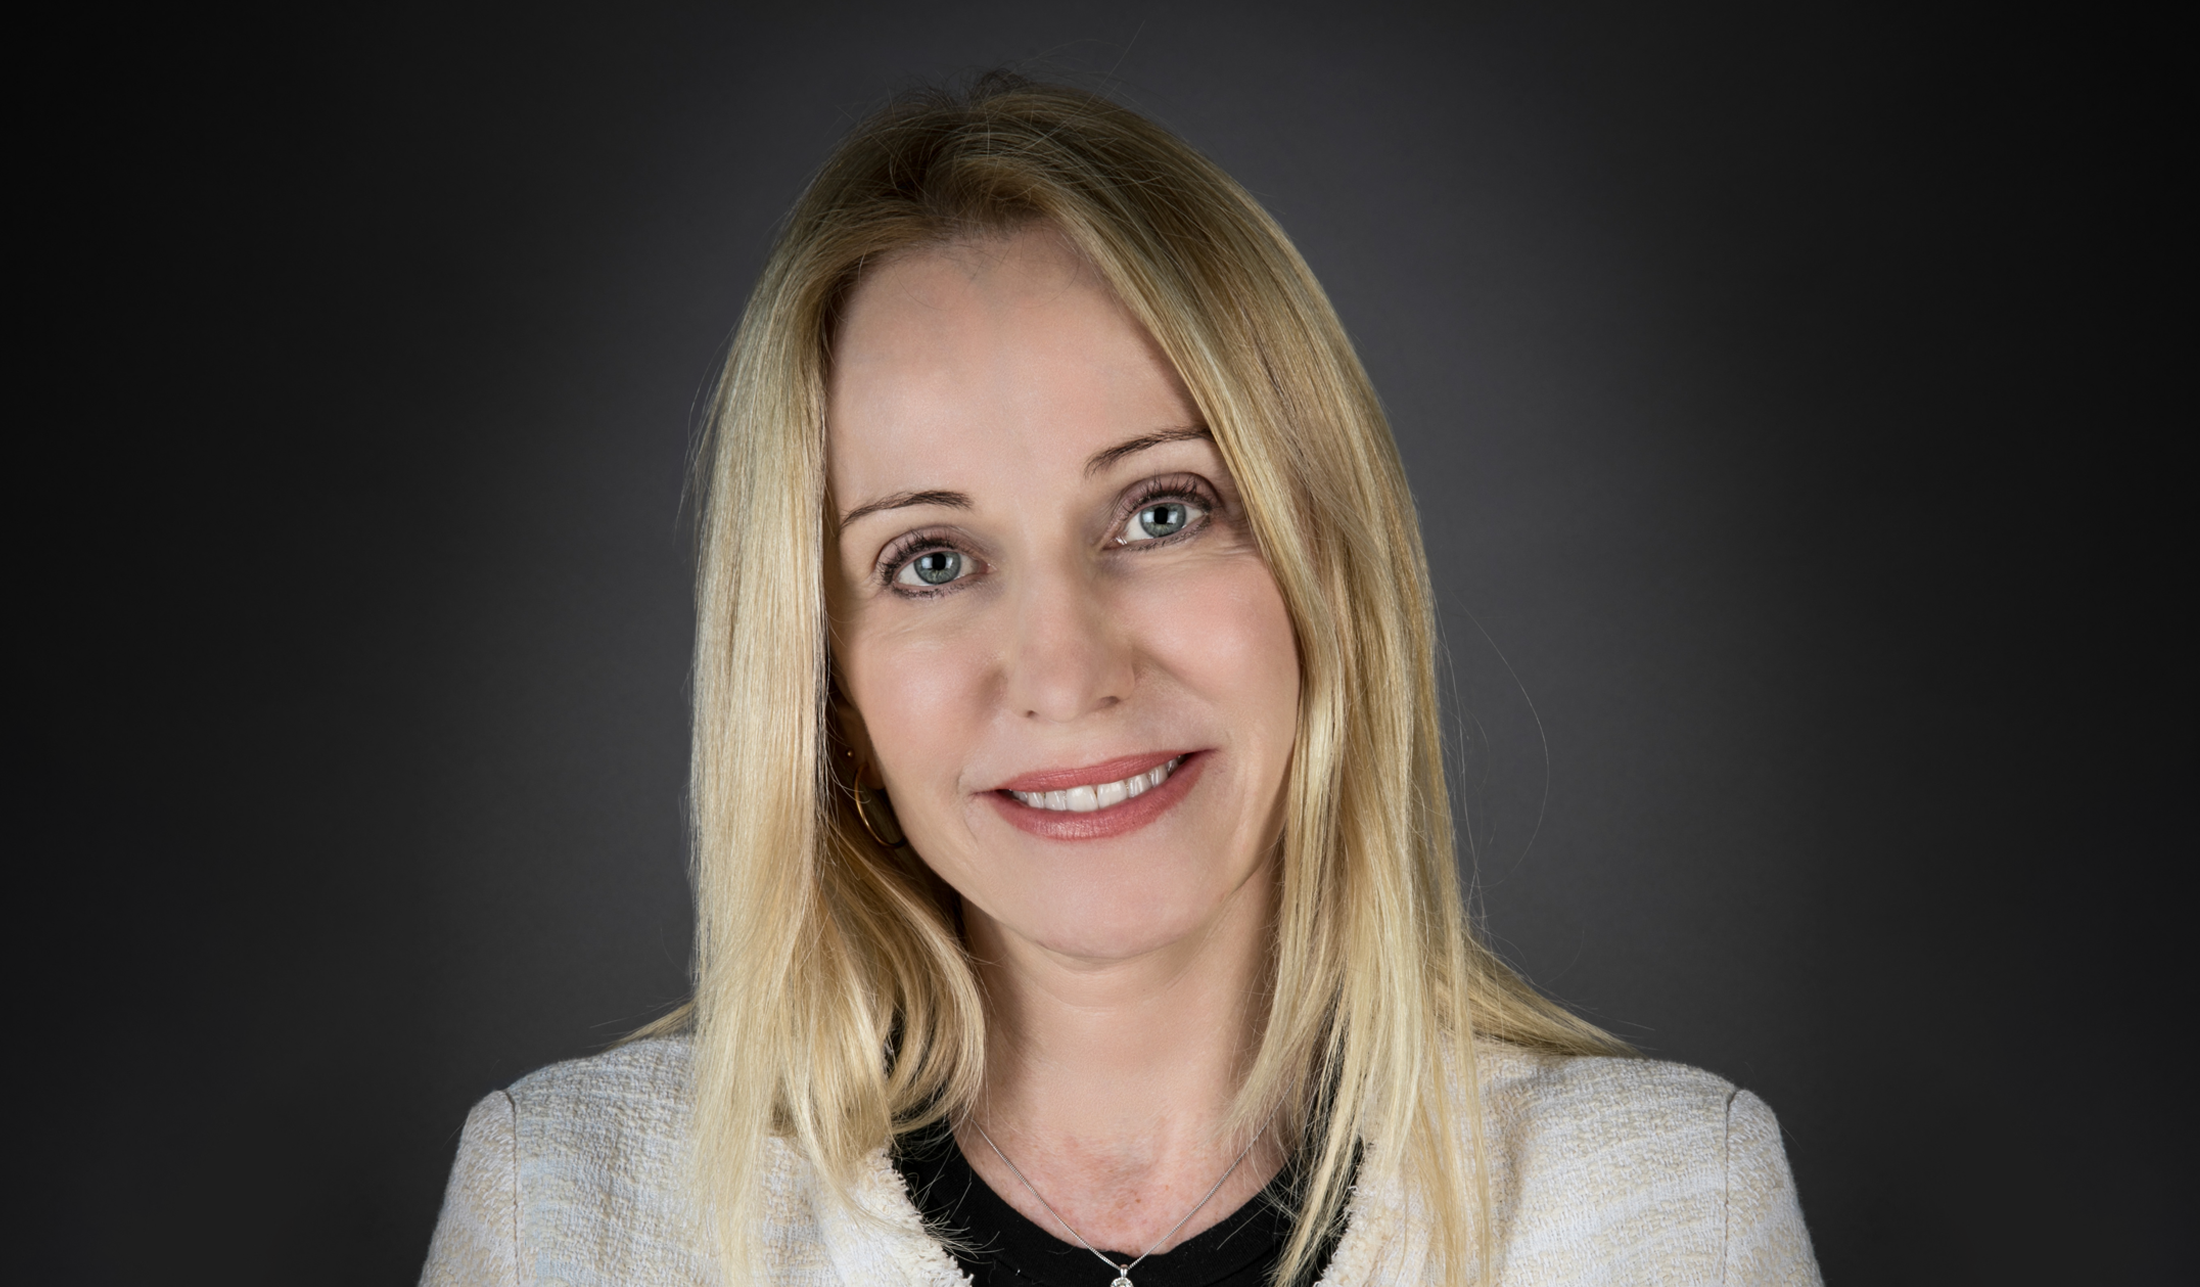 Cashflows Appoints New Chief Operating Officer